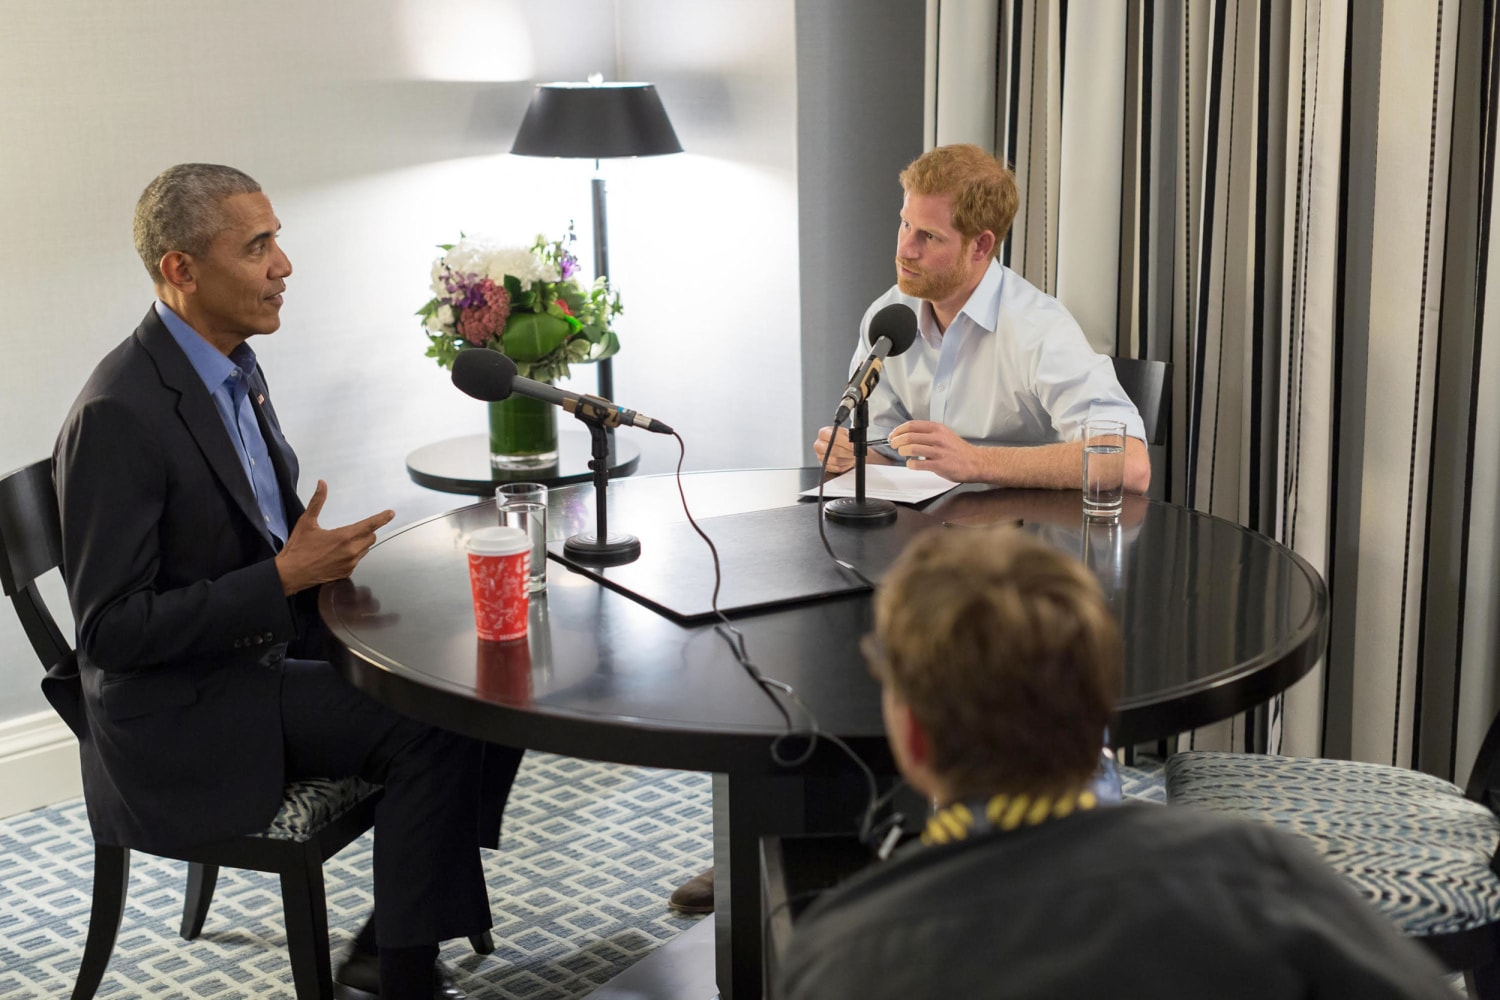 Prince Harry was 'nervous' interviewing Barack Obama for BBC Radio 4